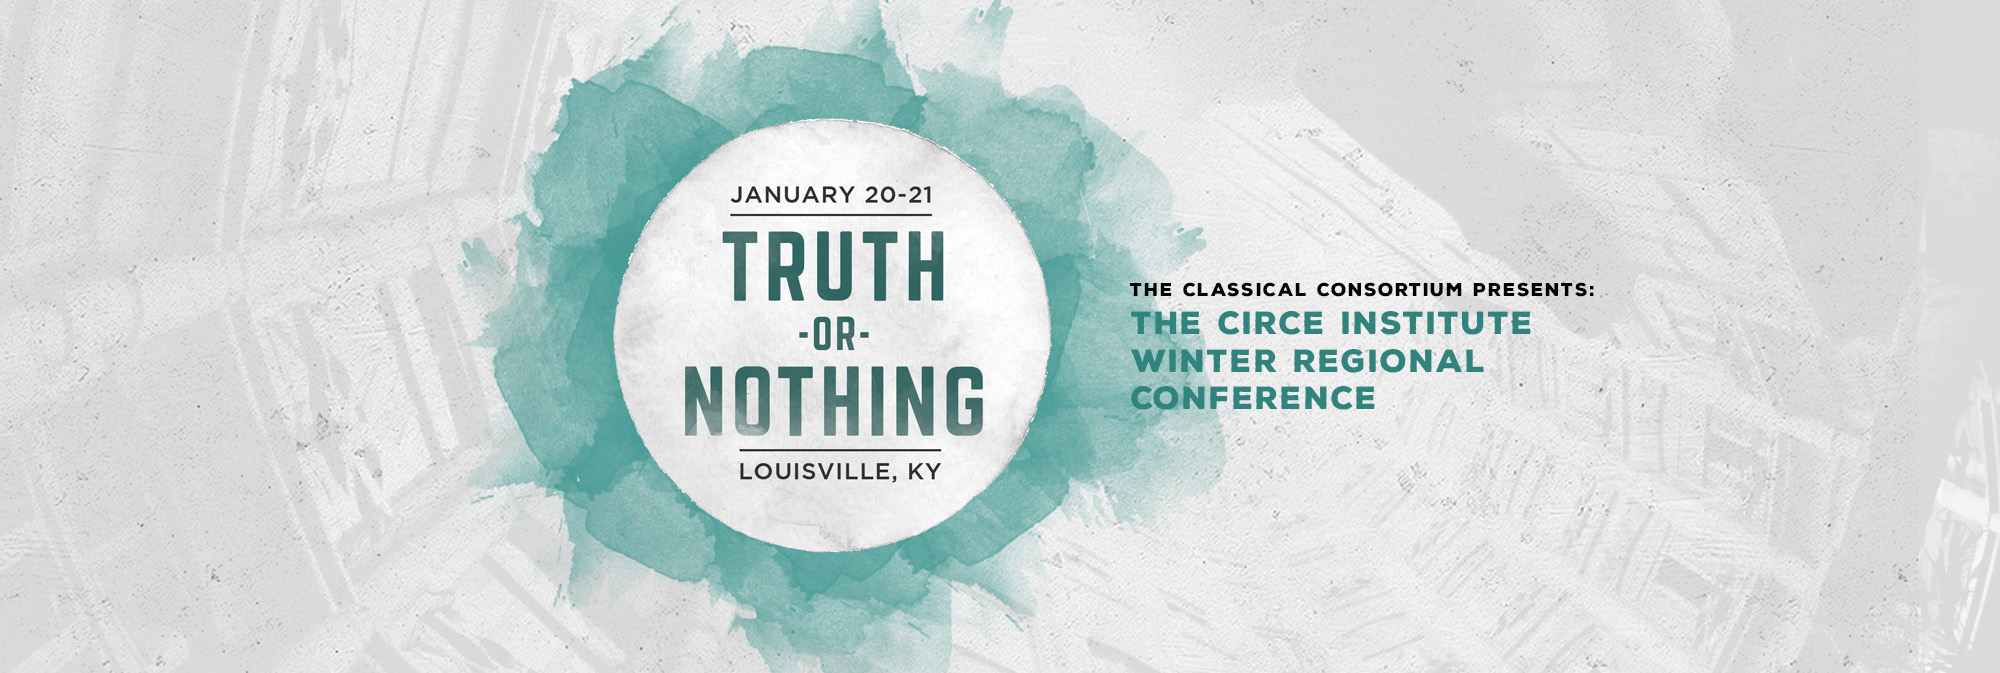 2017 Winter Regional Conference